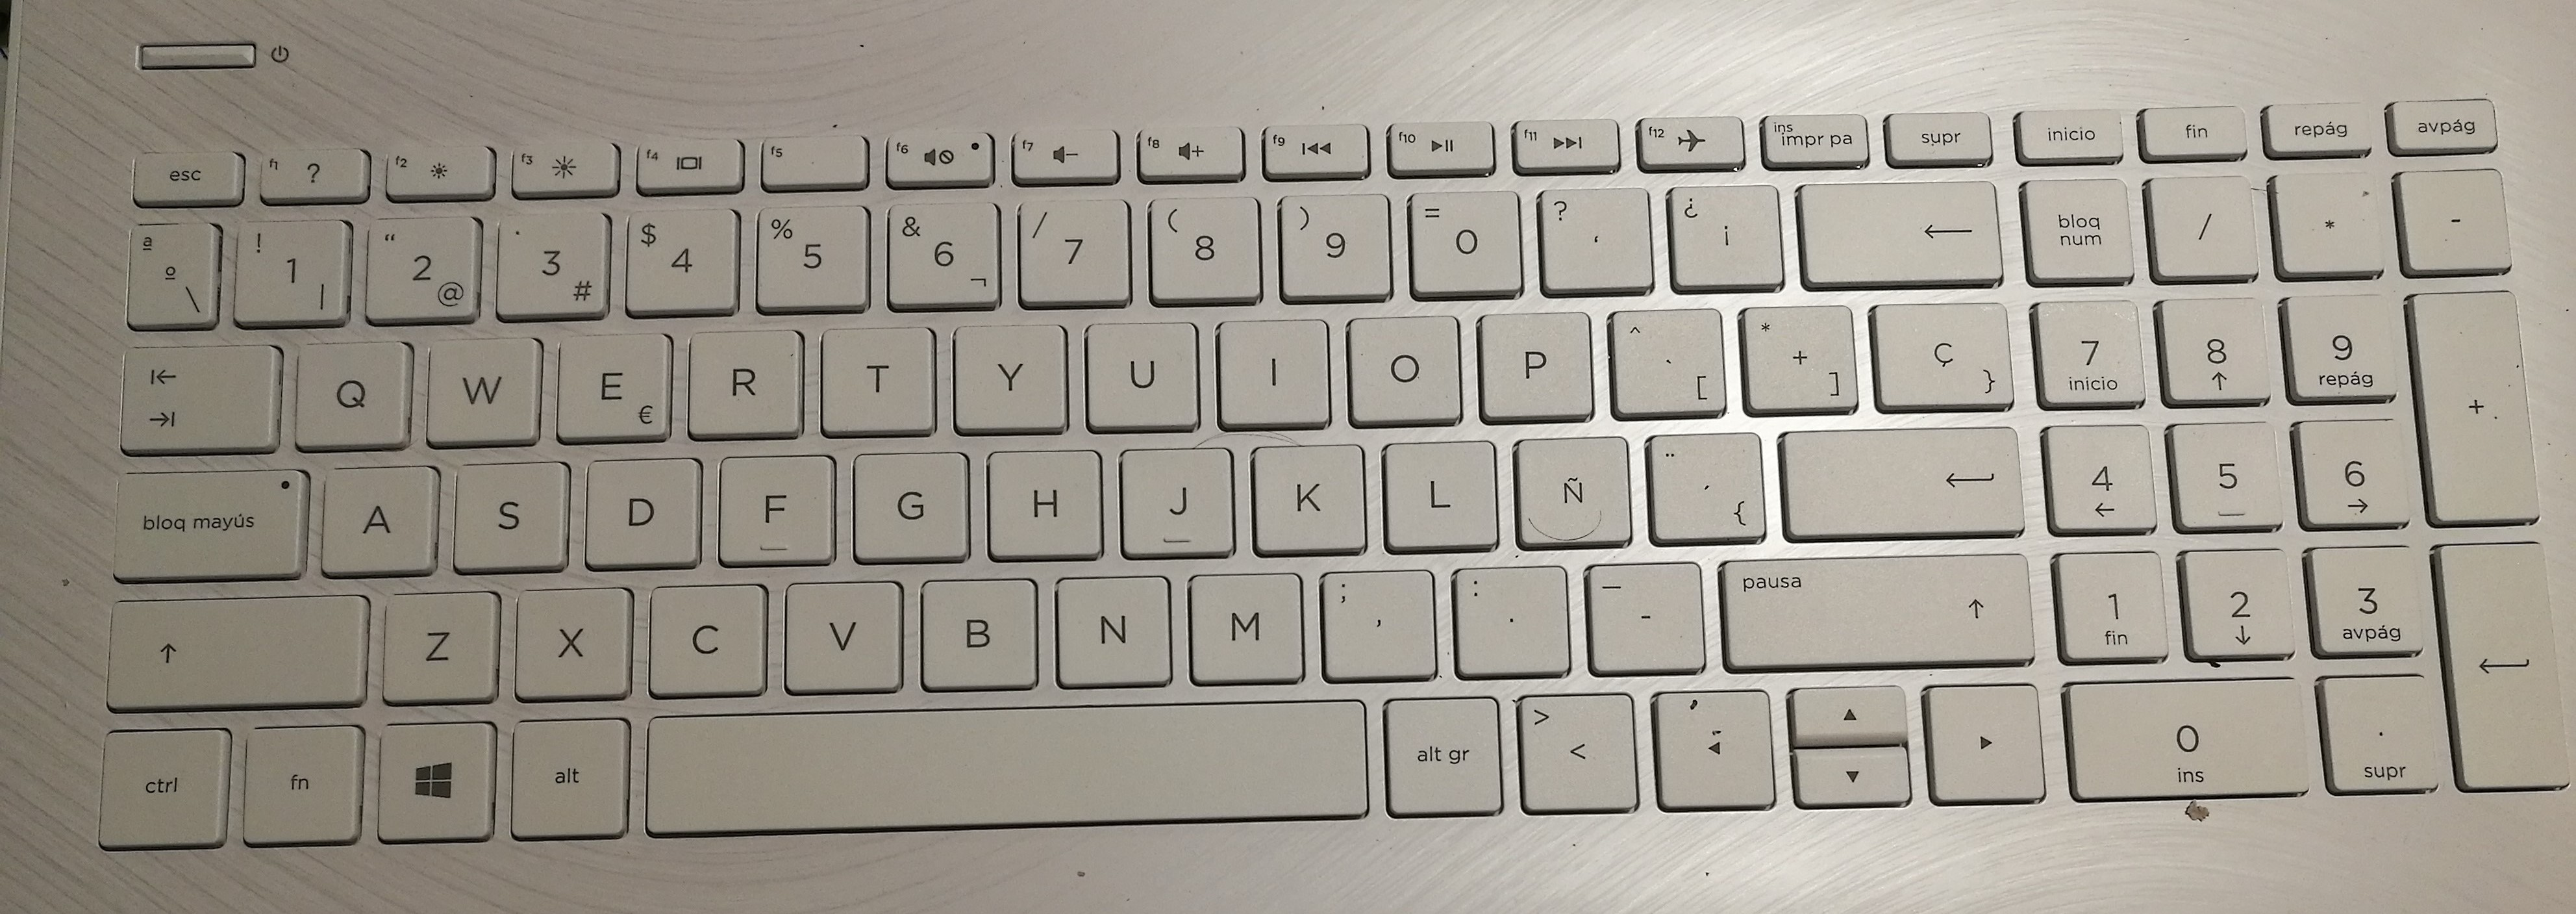 how to turn off insert key on hp envy